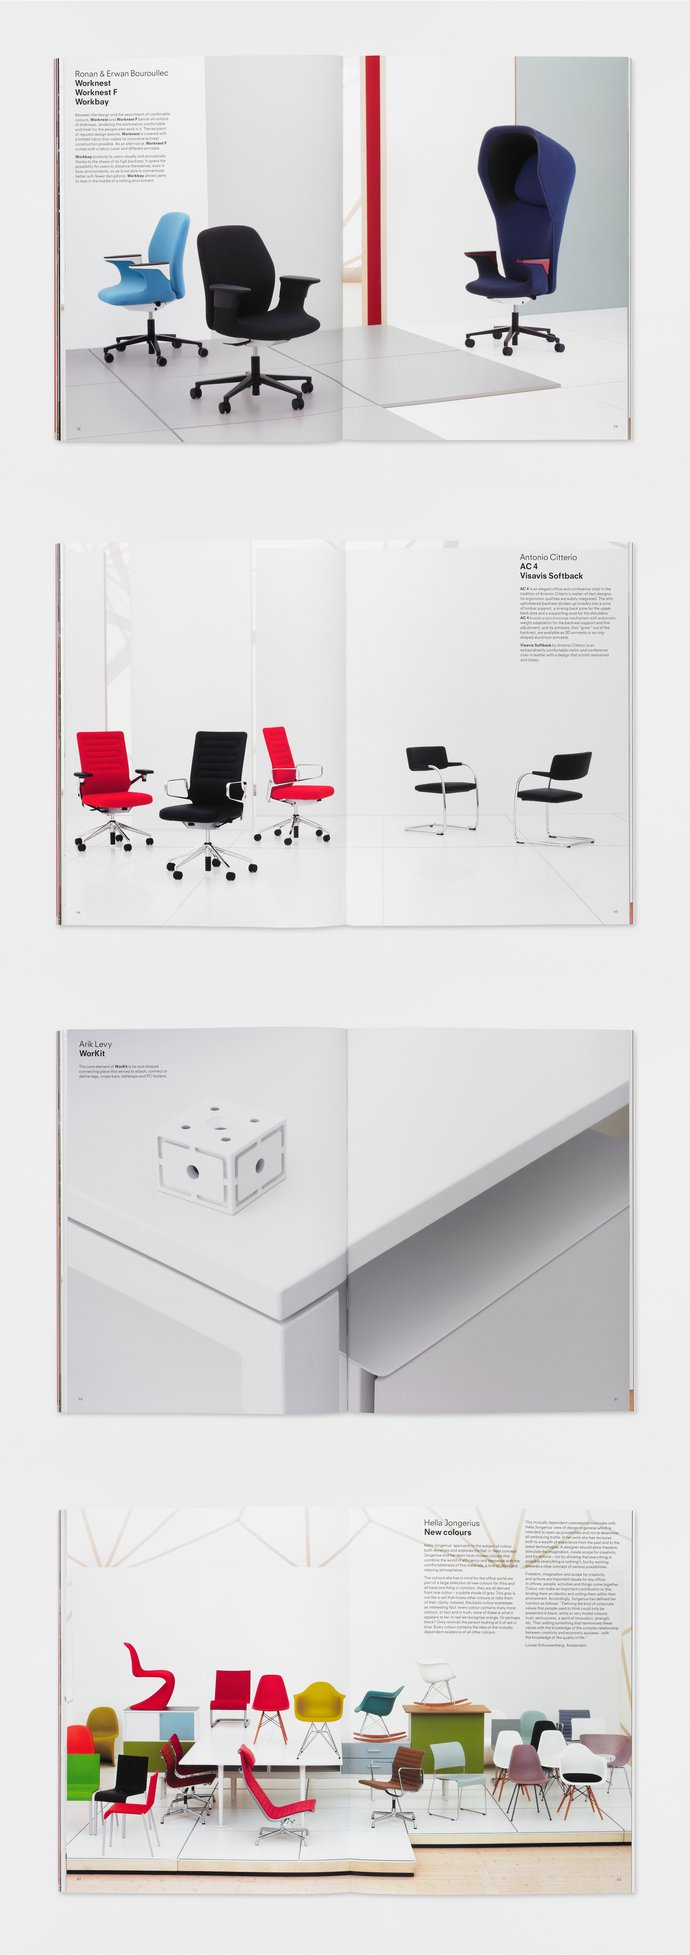 Vitra – Workspirit 11, 2008 (Publication), image 5